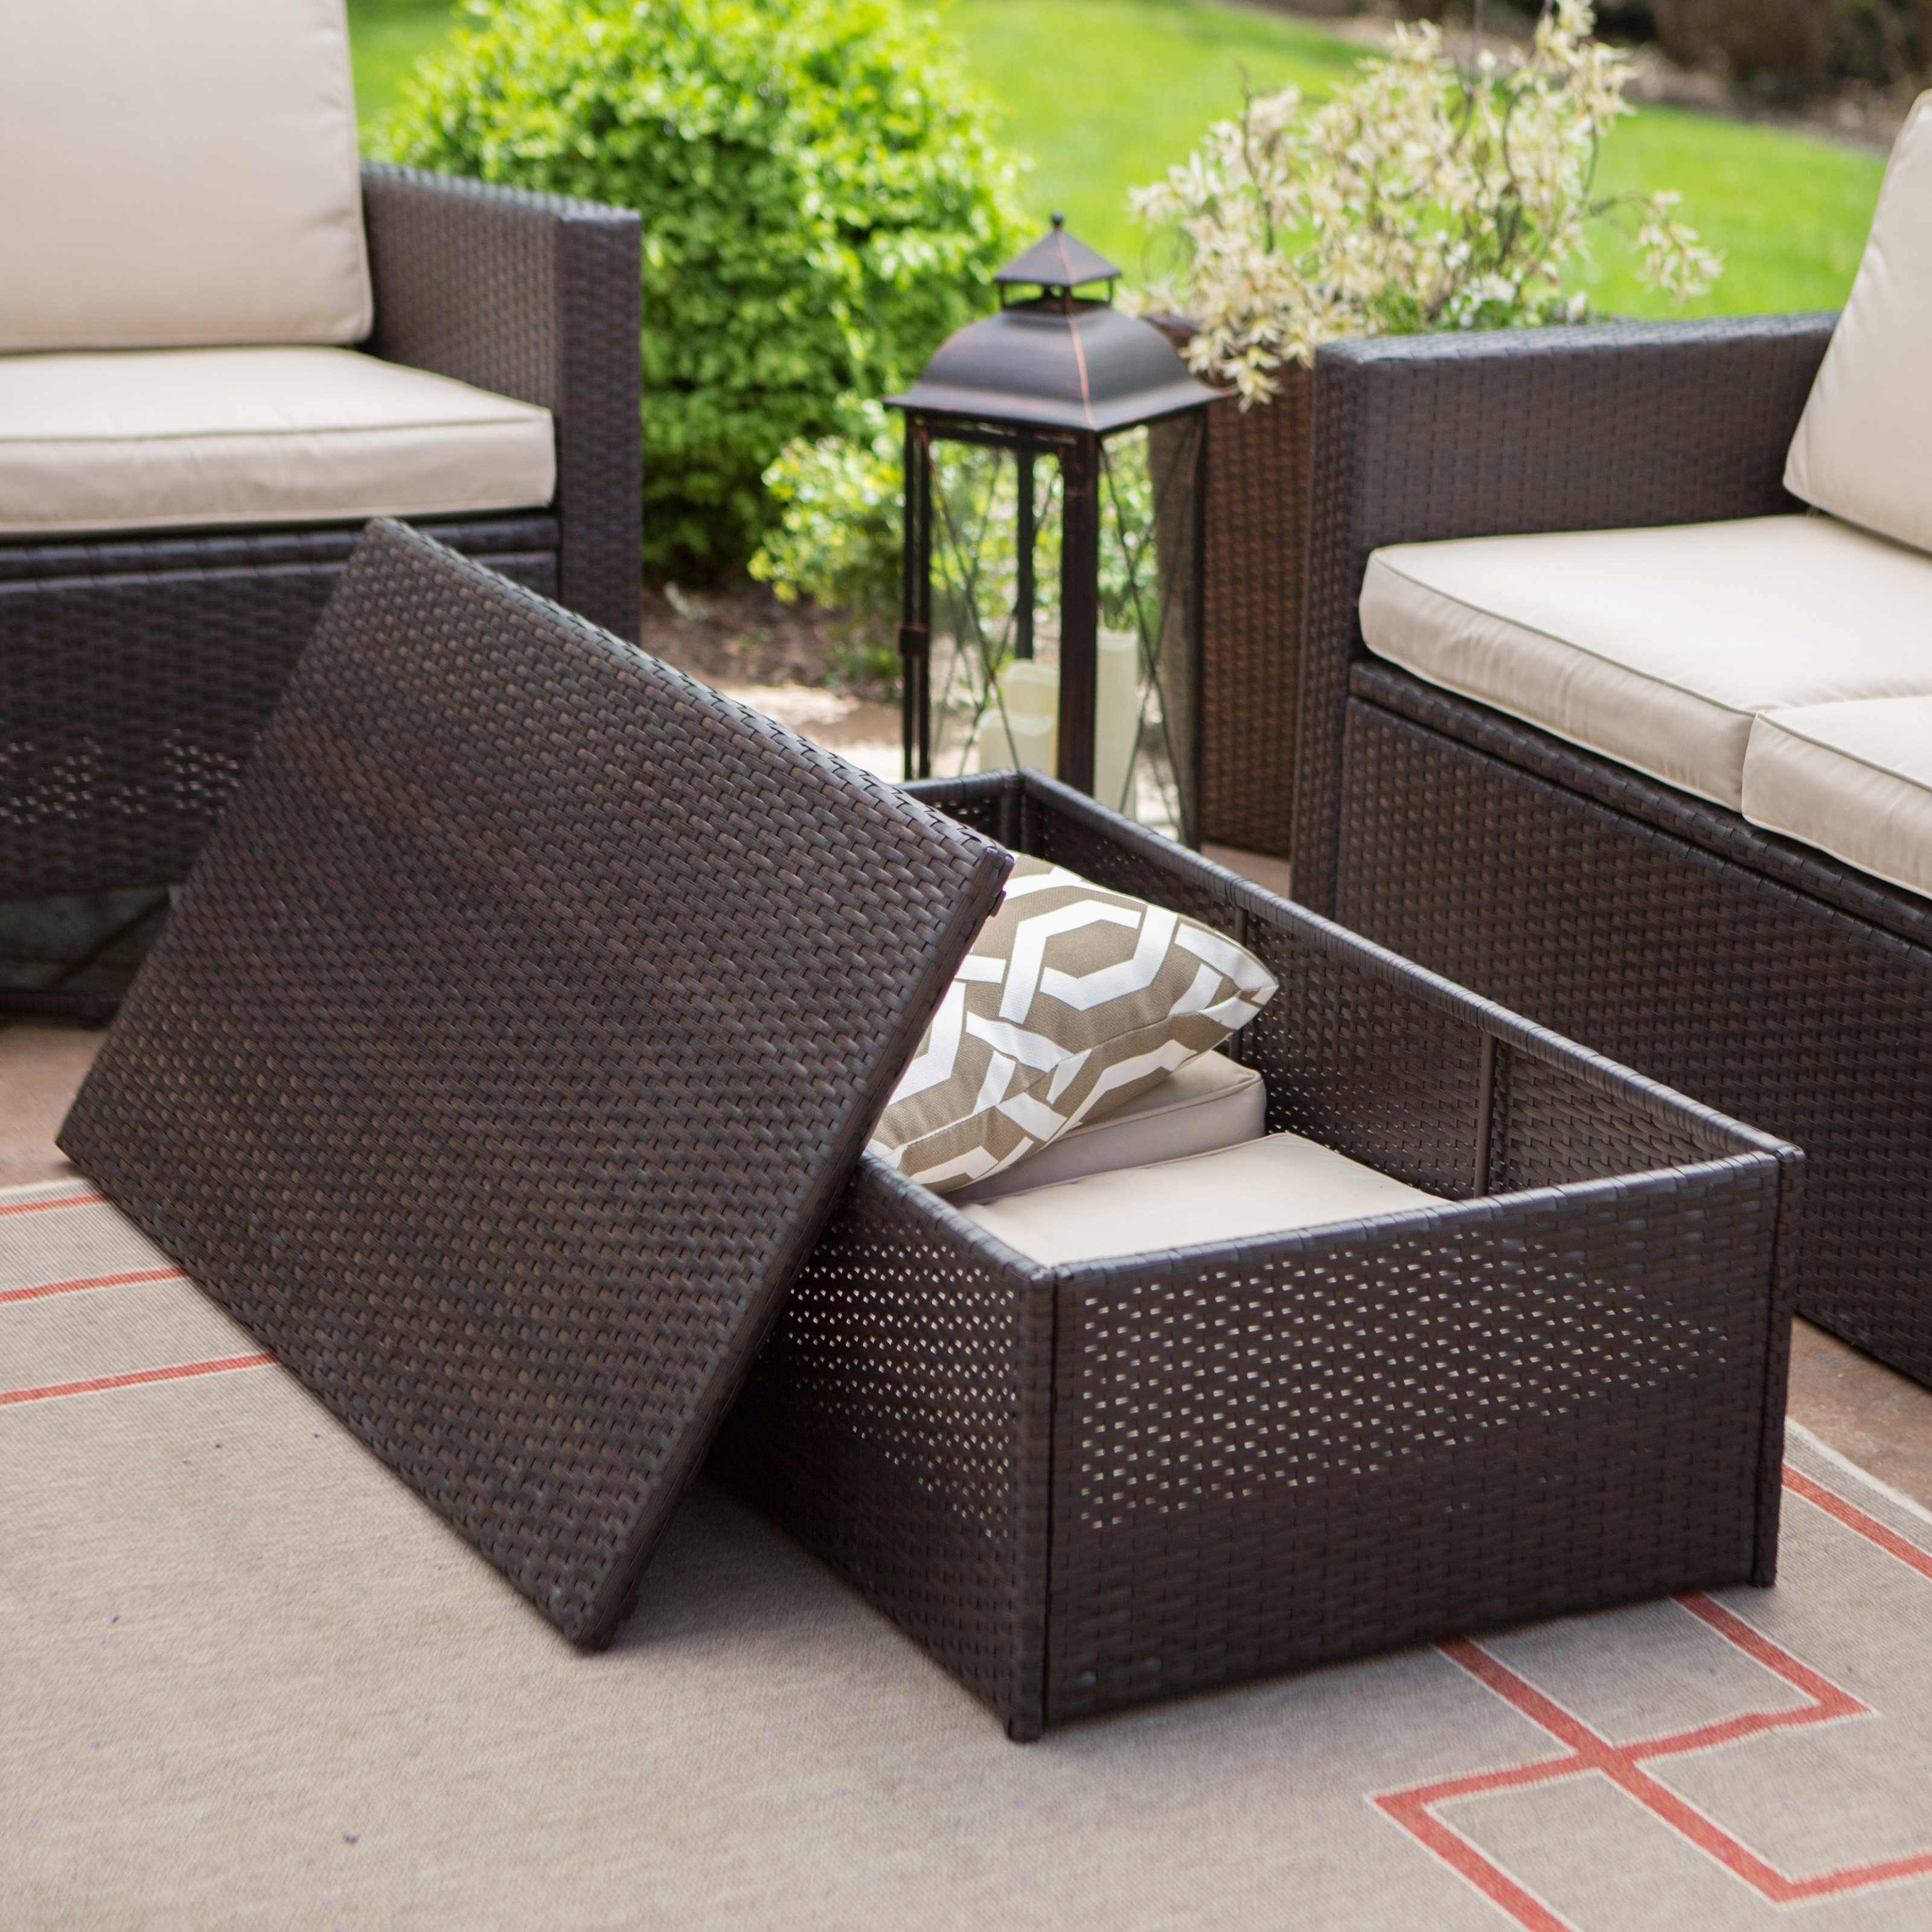 Coral Coast Berea Wicker Piece Conversation Set With Storage Patio Pertaining To Most Recently Released Patio Conversation Sets With Storage (View 2 of 20)